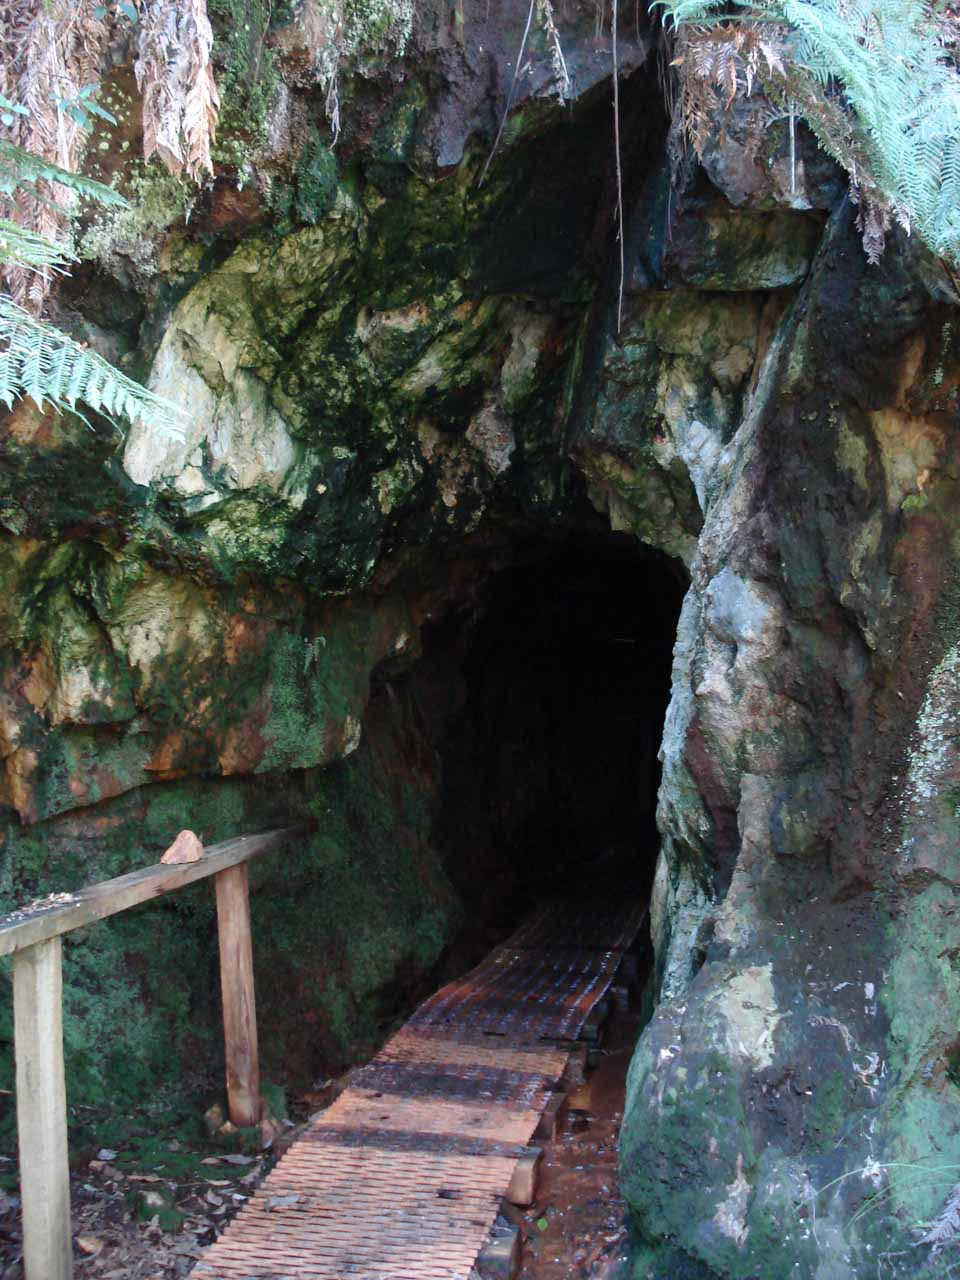 Some abandoned mine besides the trail